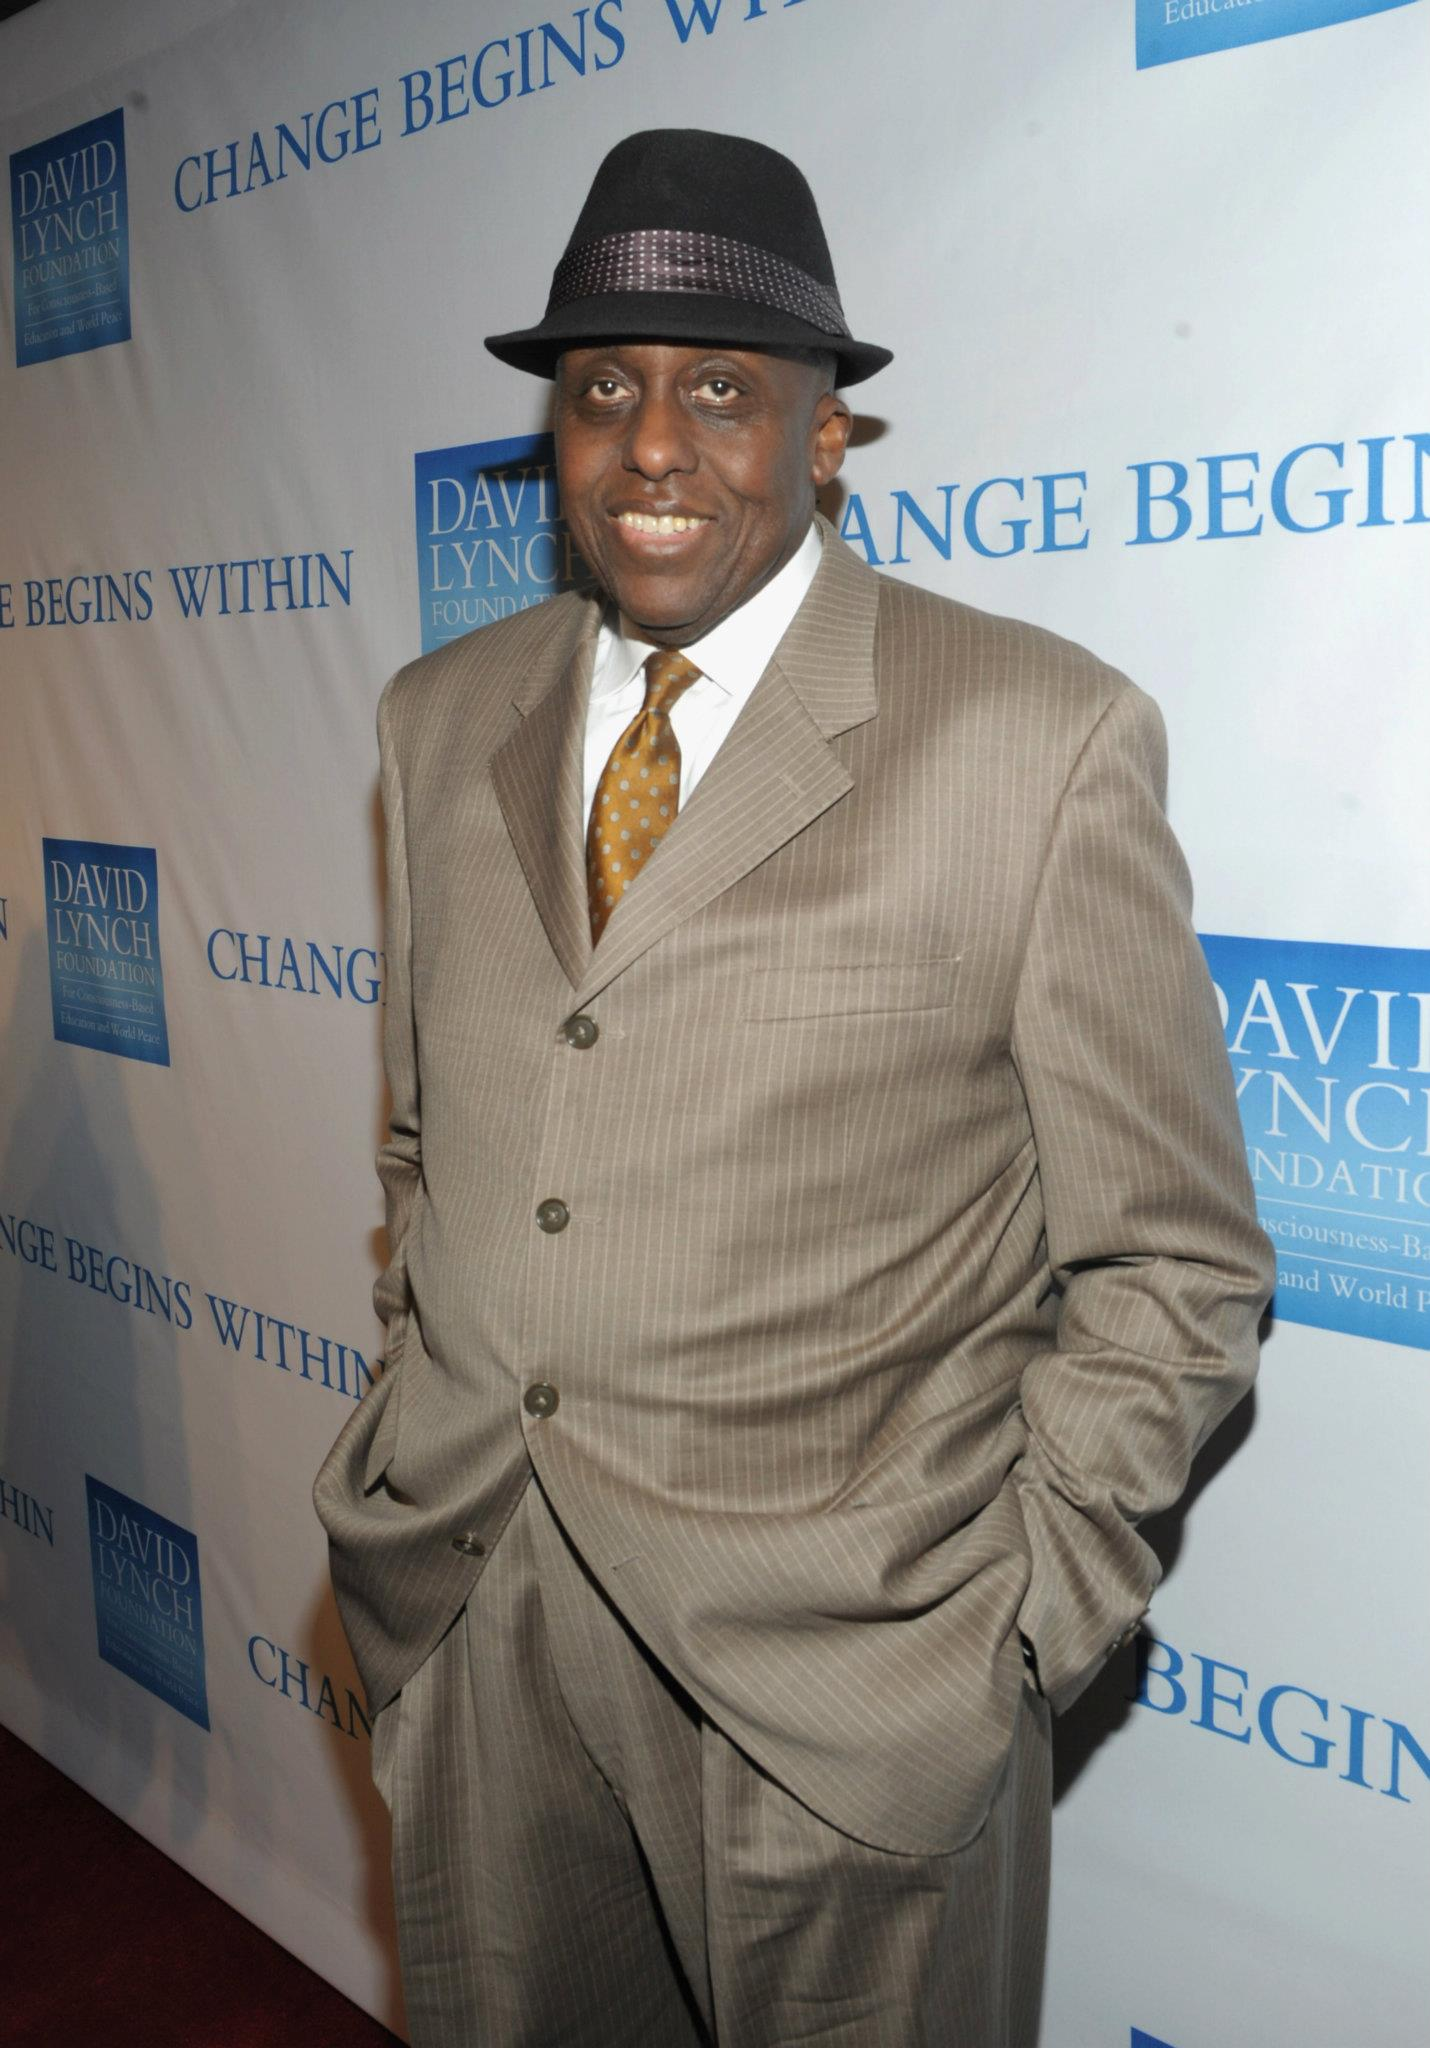 bill duke marriedbill duke 2016, bill duke instagram, bill duke imdb, bill duke wife, bill duke net worth, bill duke height, bill duke movies, bill duke predator, bill duke 2015, bill duke commando, bill duke 2014, bill duke energy, bill duke siblings, bill duke married, bill duke menace to society, bill duke net worth 2015, bill duke predator quotes, bill duke biografia, bill duke films, bill duke documentary